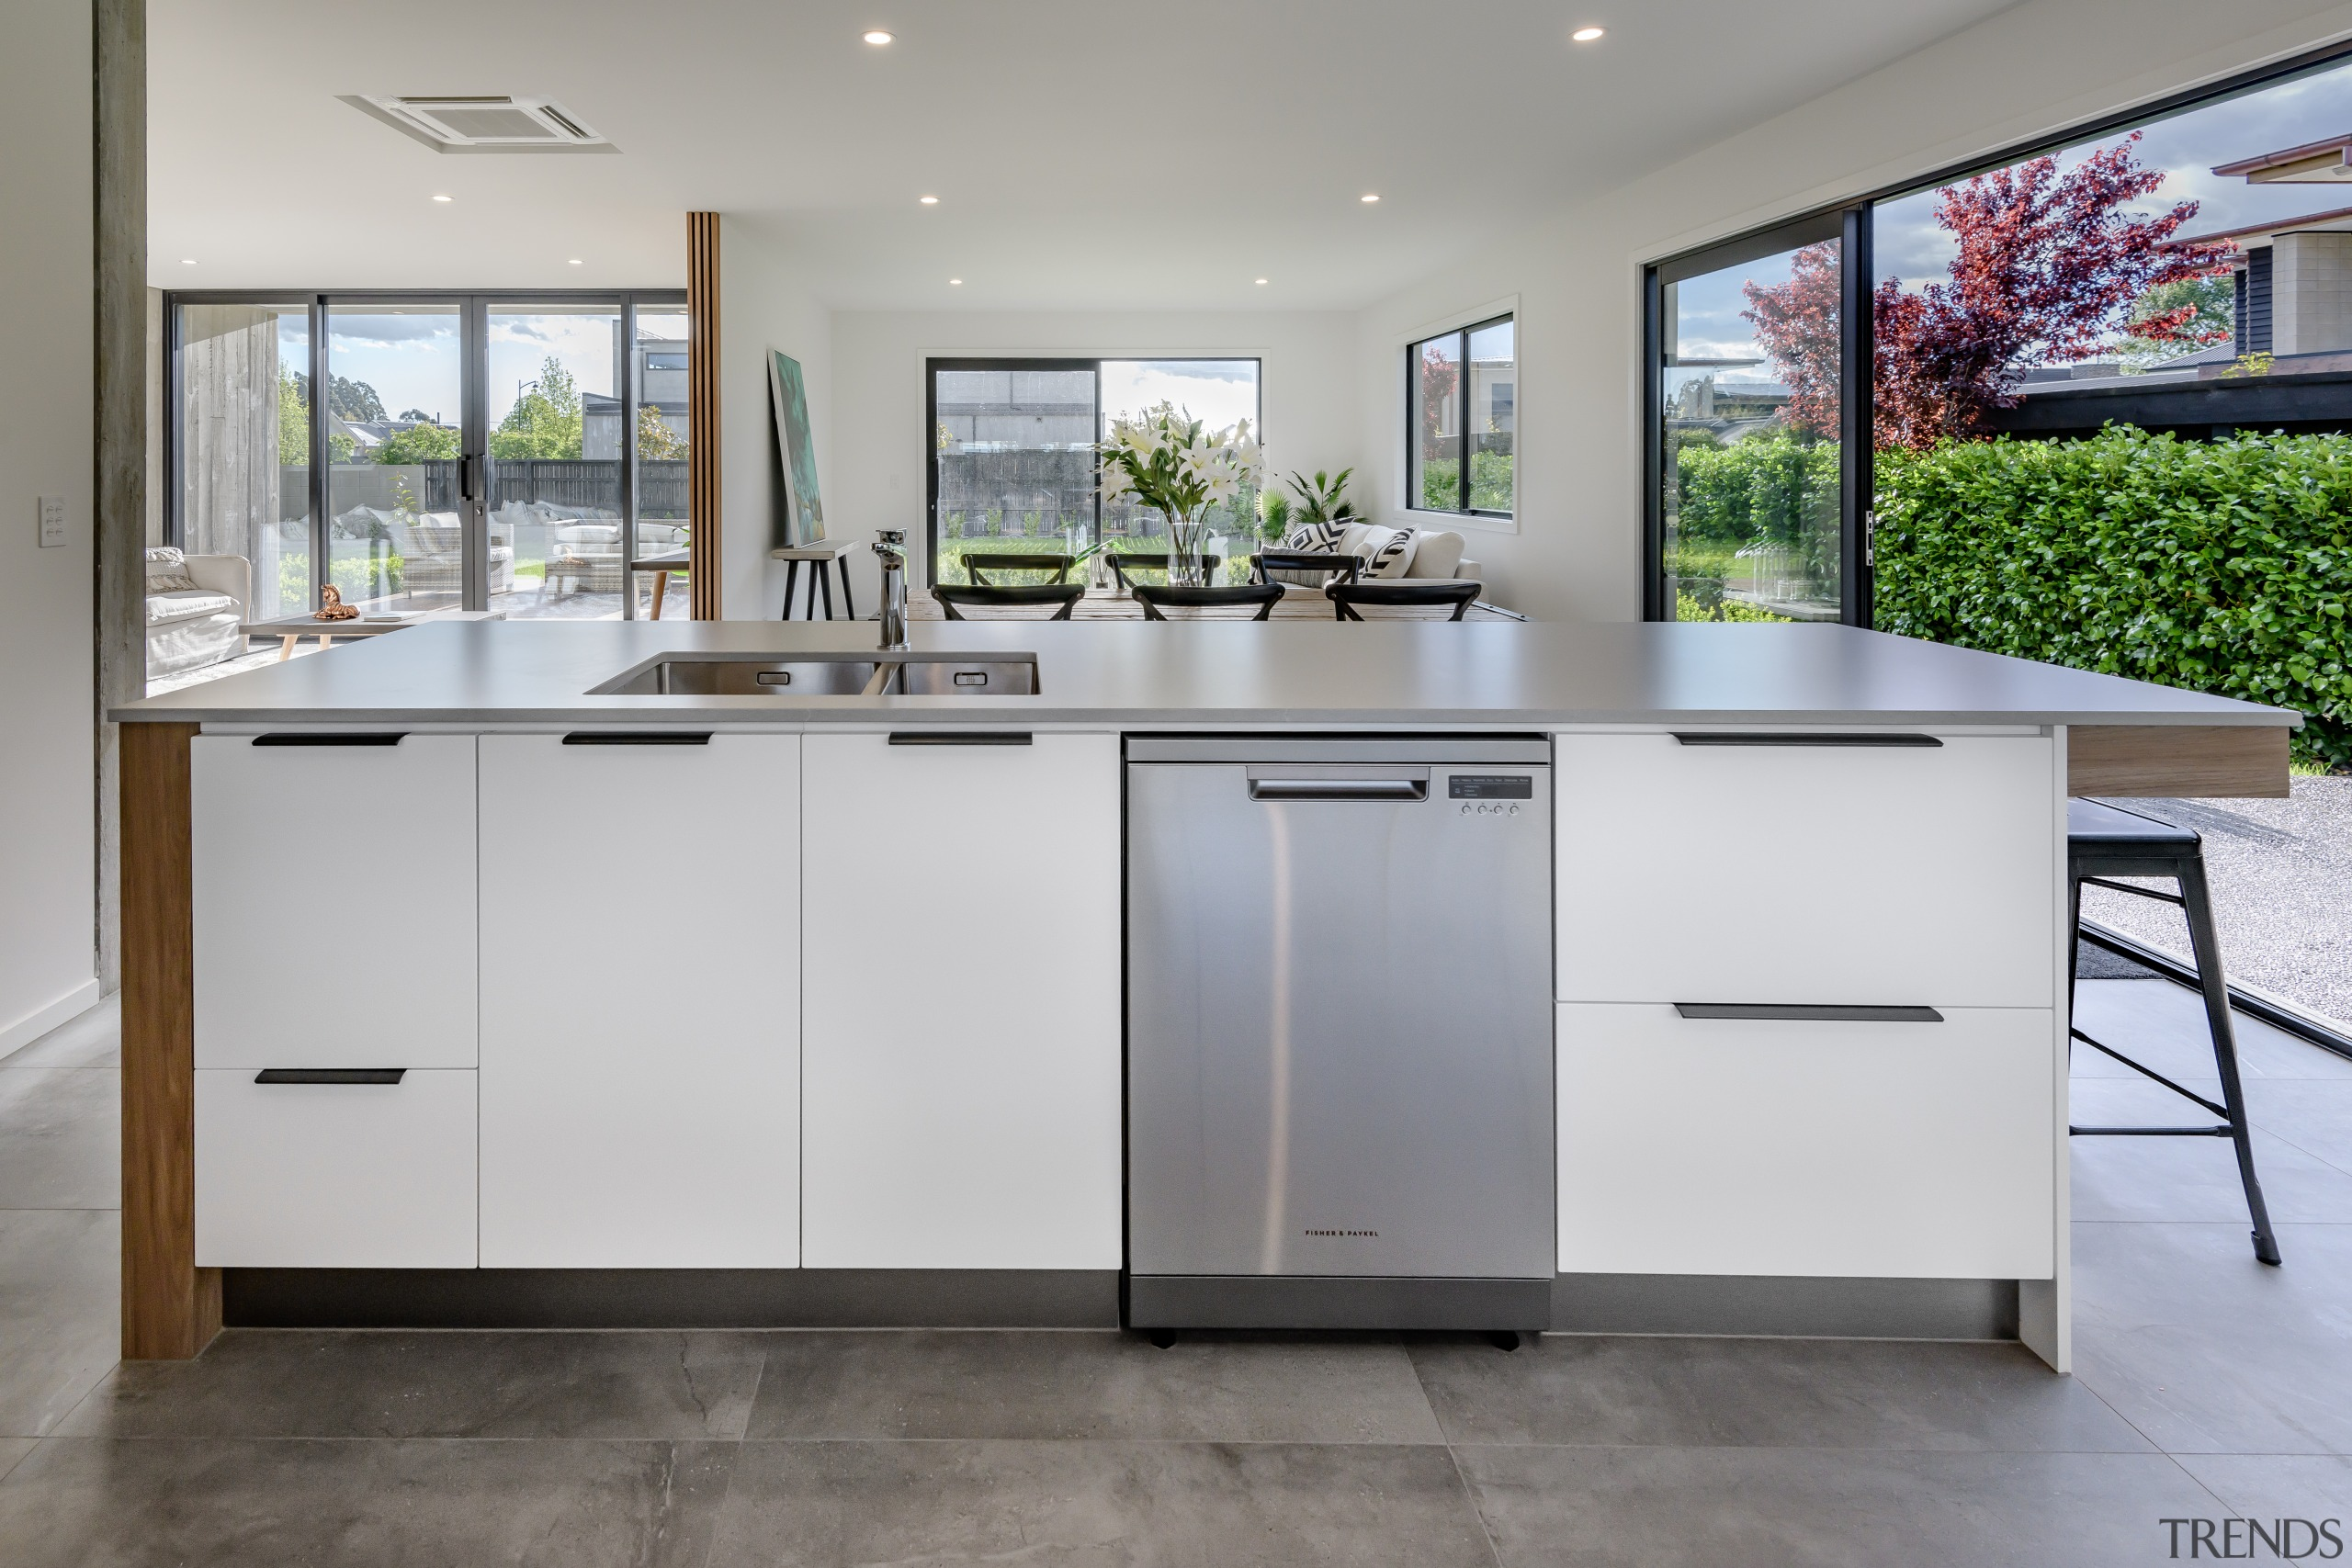 This kitchen island includes deep drawers with cutlery